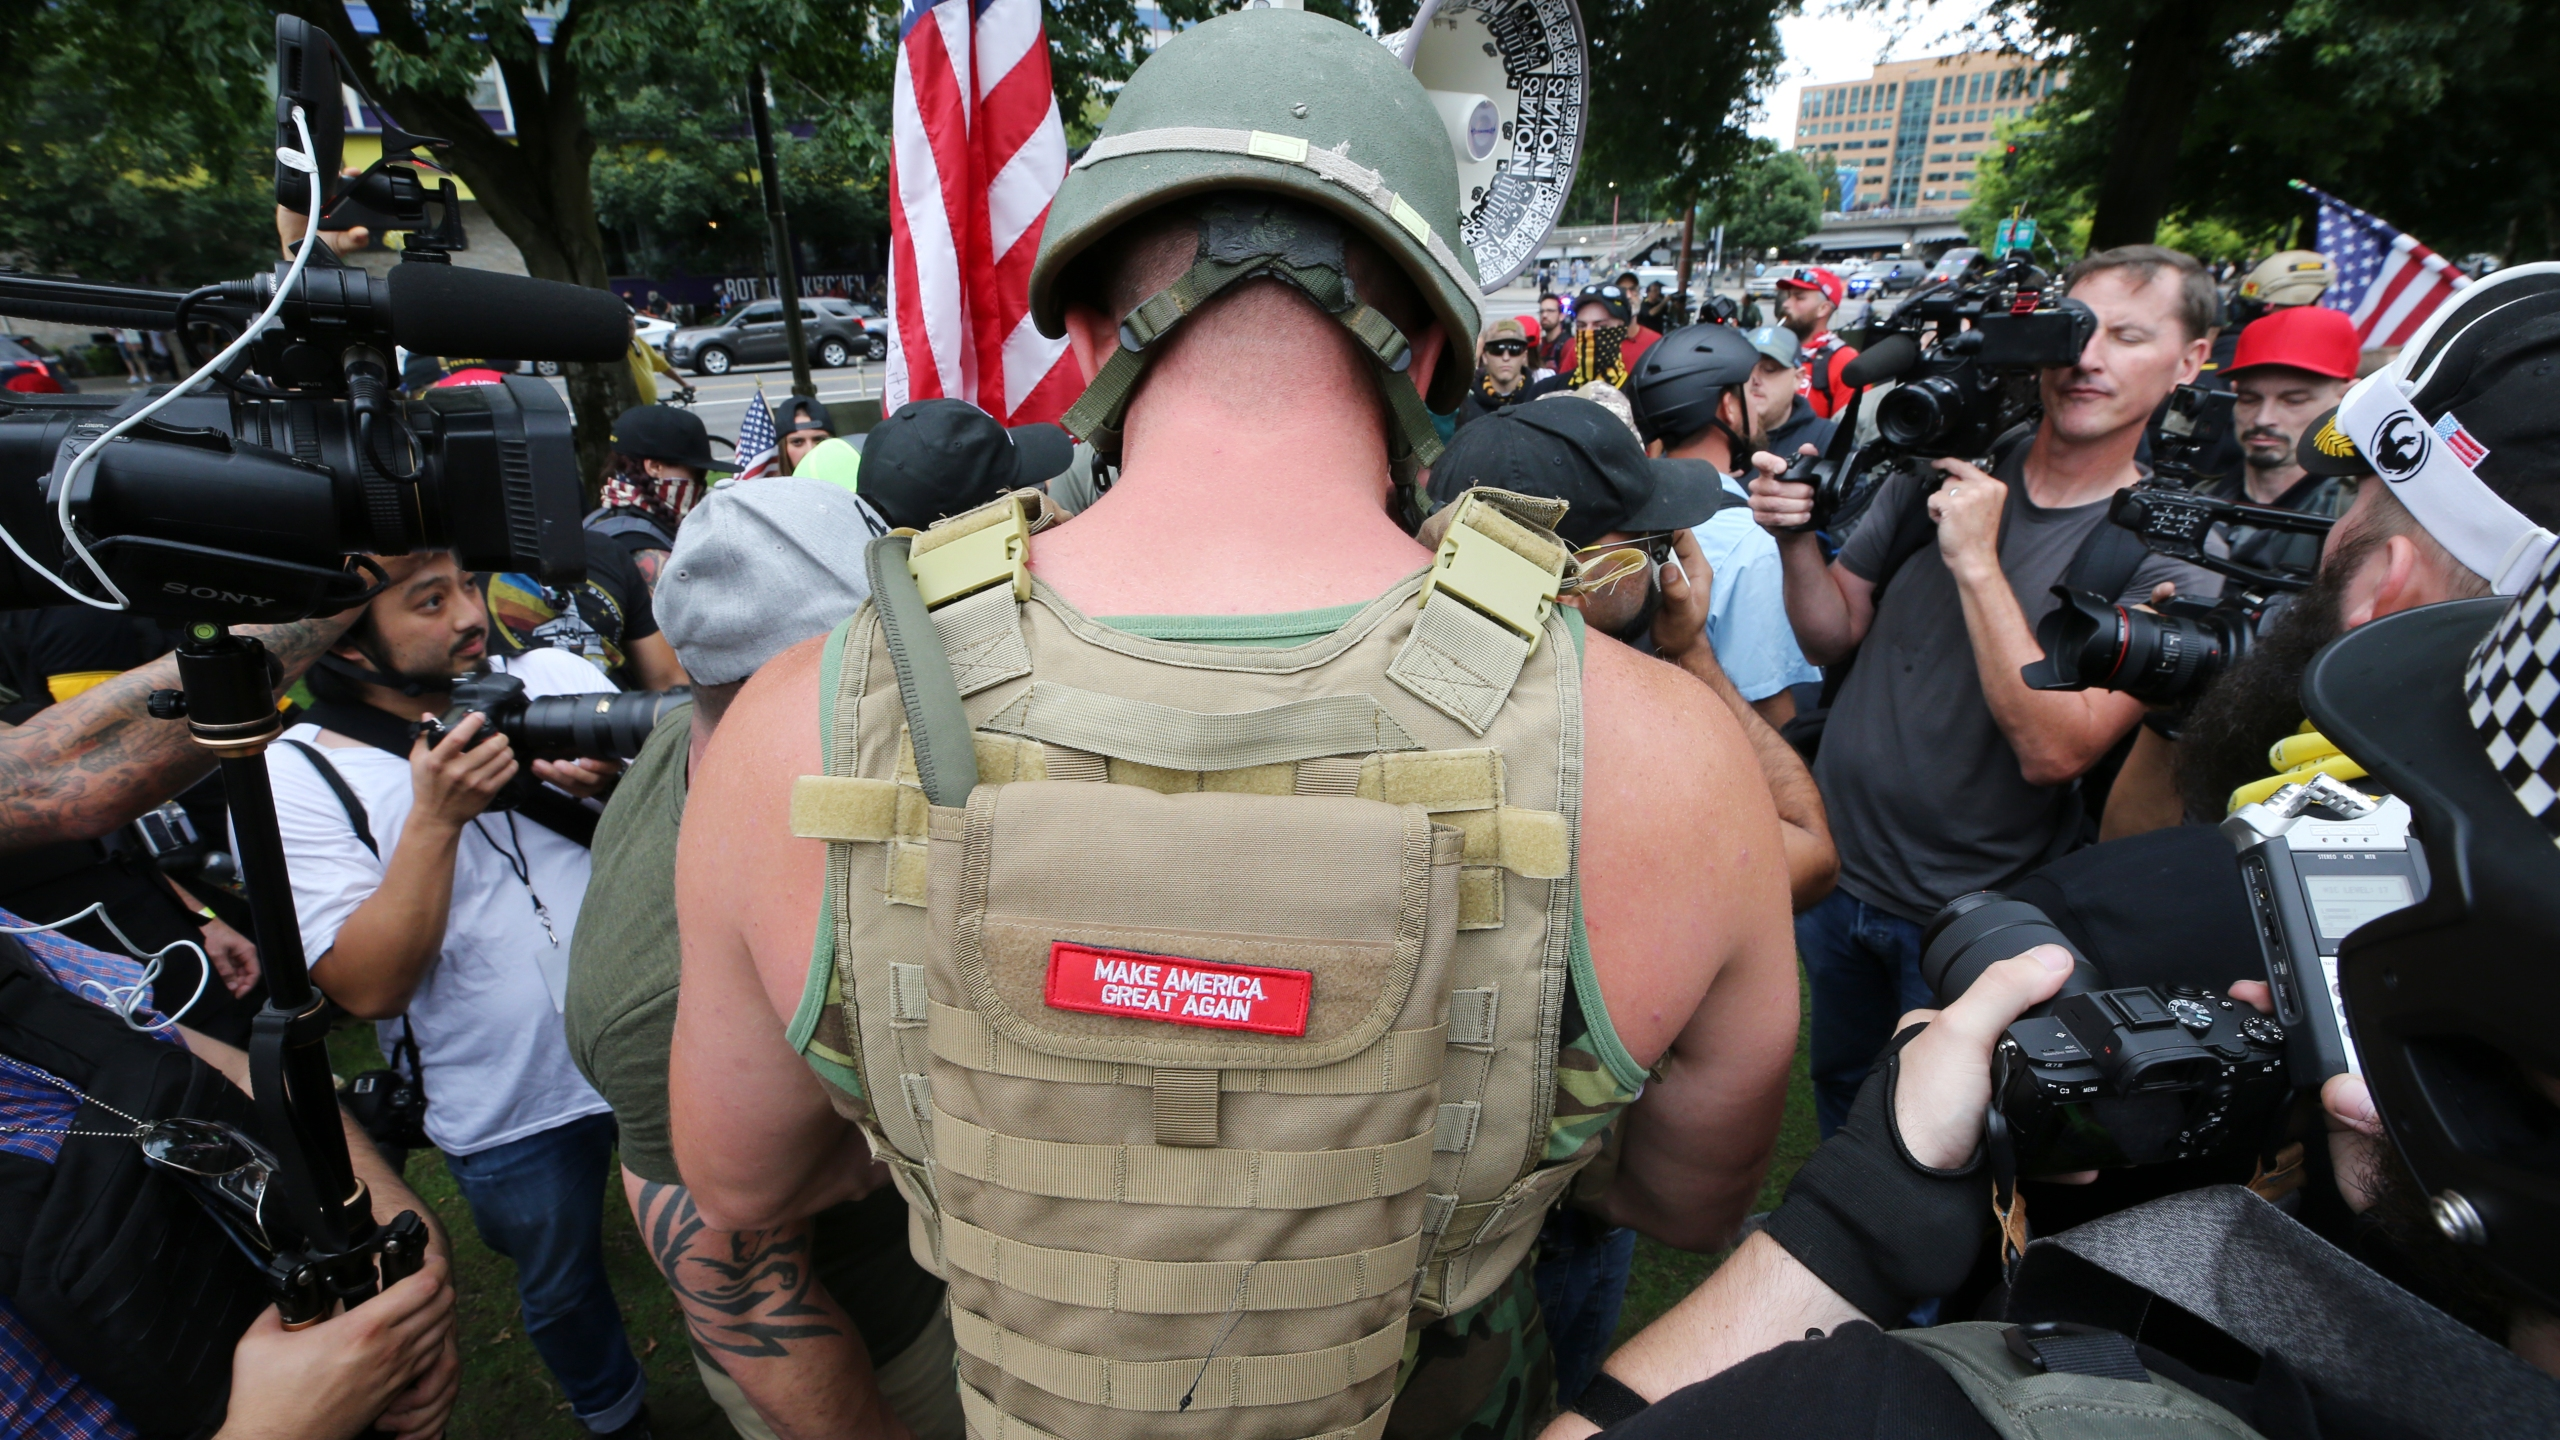 Far-right groups hold a rally at the Tom McCall Waterfront Park on Aug. 17, 2019 in Portland, Oregon. (Credit: Karen Ducey/Getty Images)